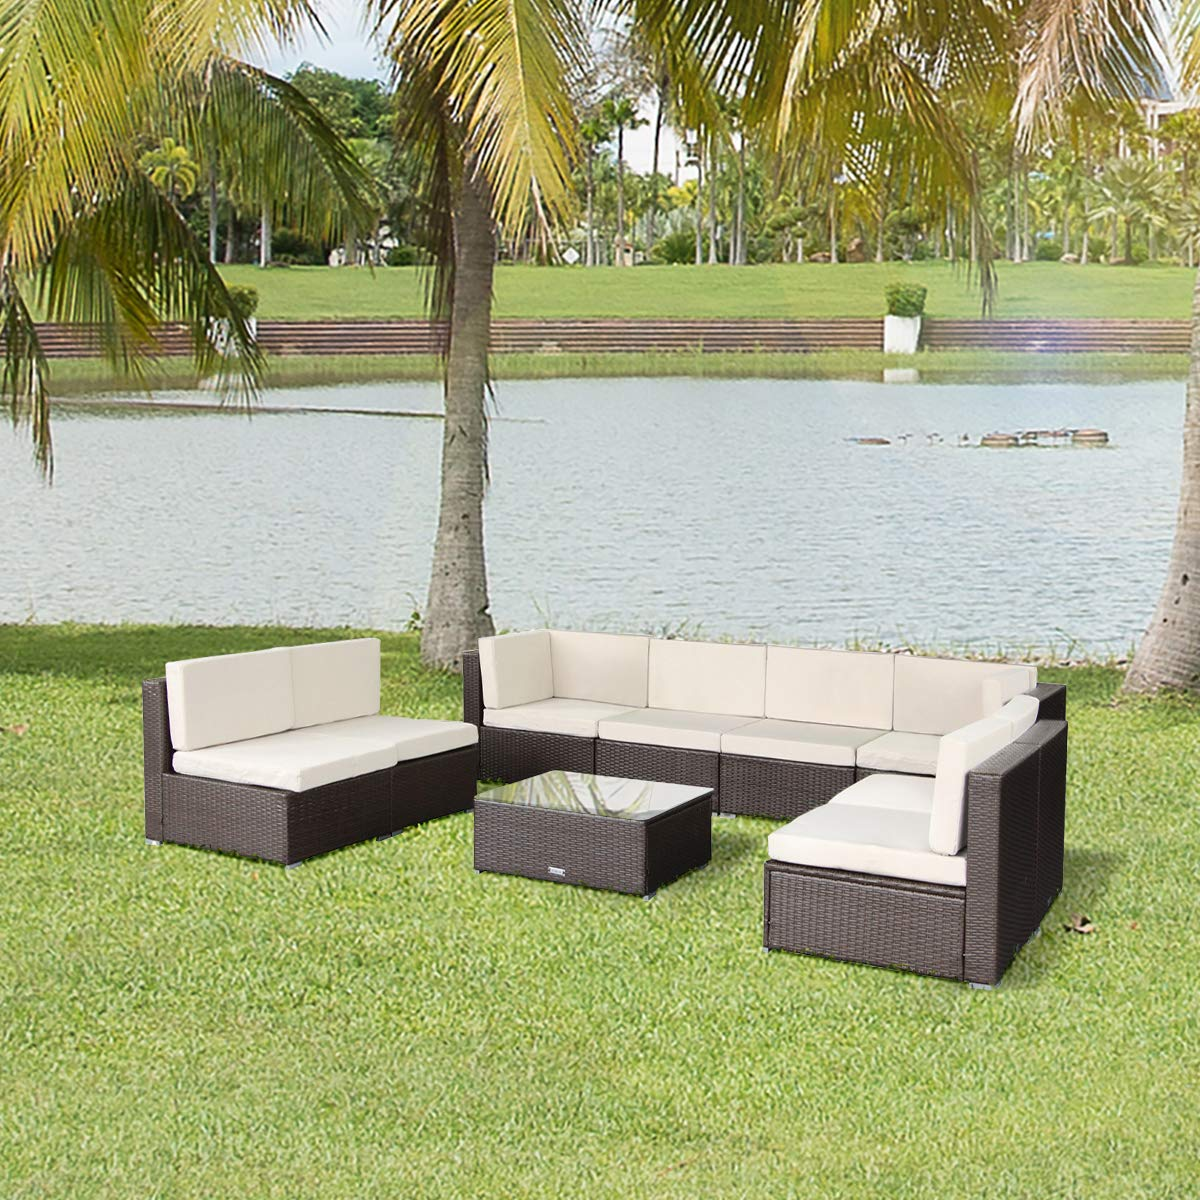 U-MAX Patio PE Rattan Wicker Sofa Set Outdoor Sectional Furniture Chair Set with Cushions and Tea Table (9 Pieces, Brown)